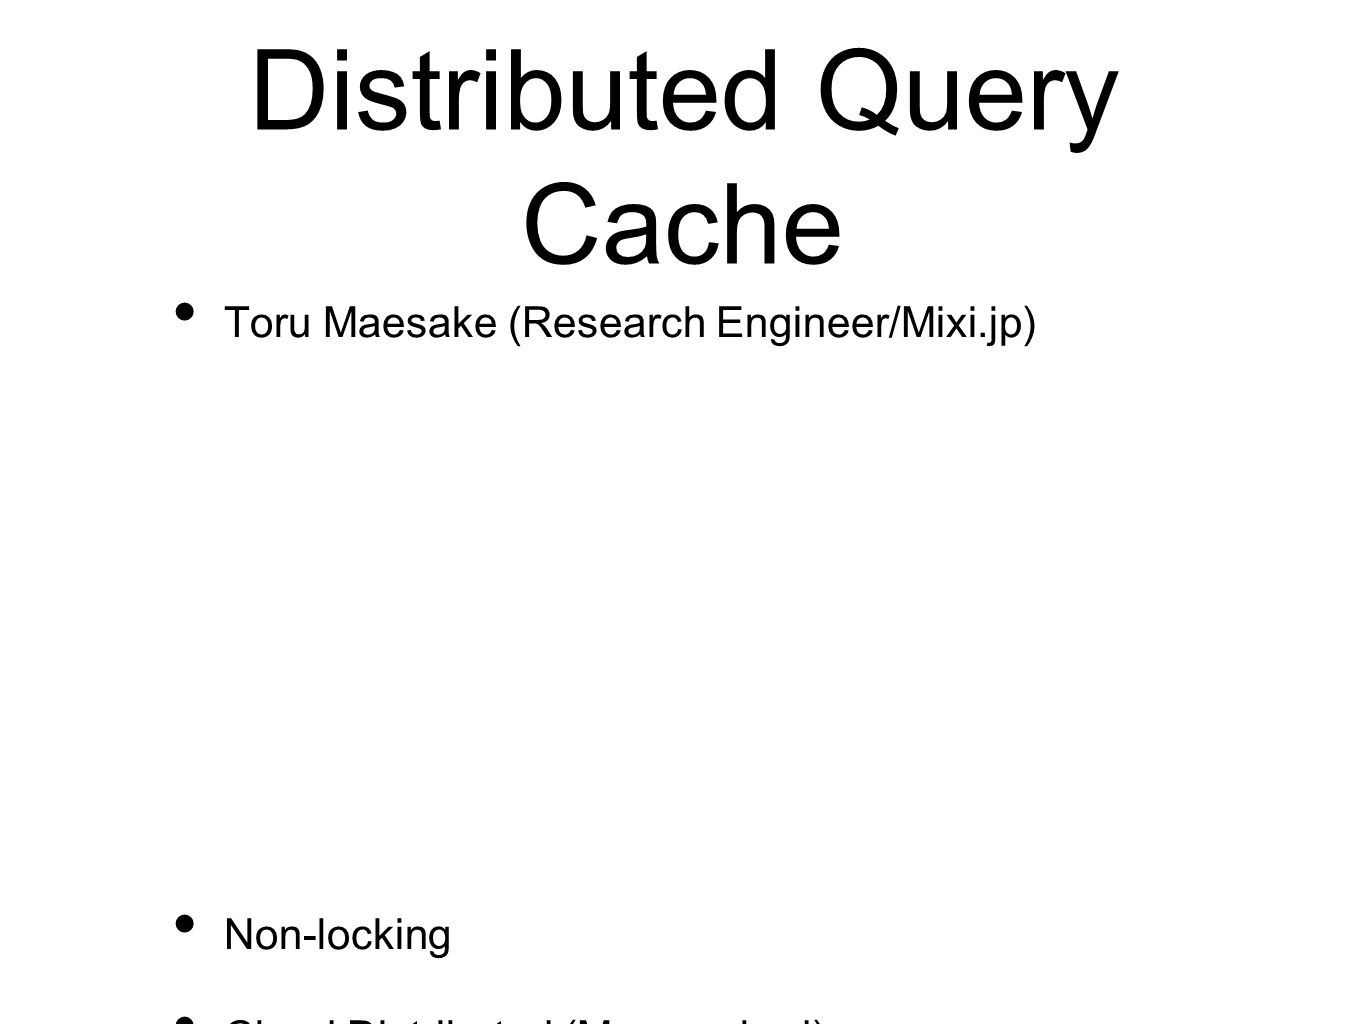 Distributed Query Cache Toru Maesake (Research Engineer/Mixi.jp) Non-locking Cloud Distributed (Memcached) Pluggable